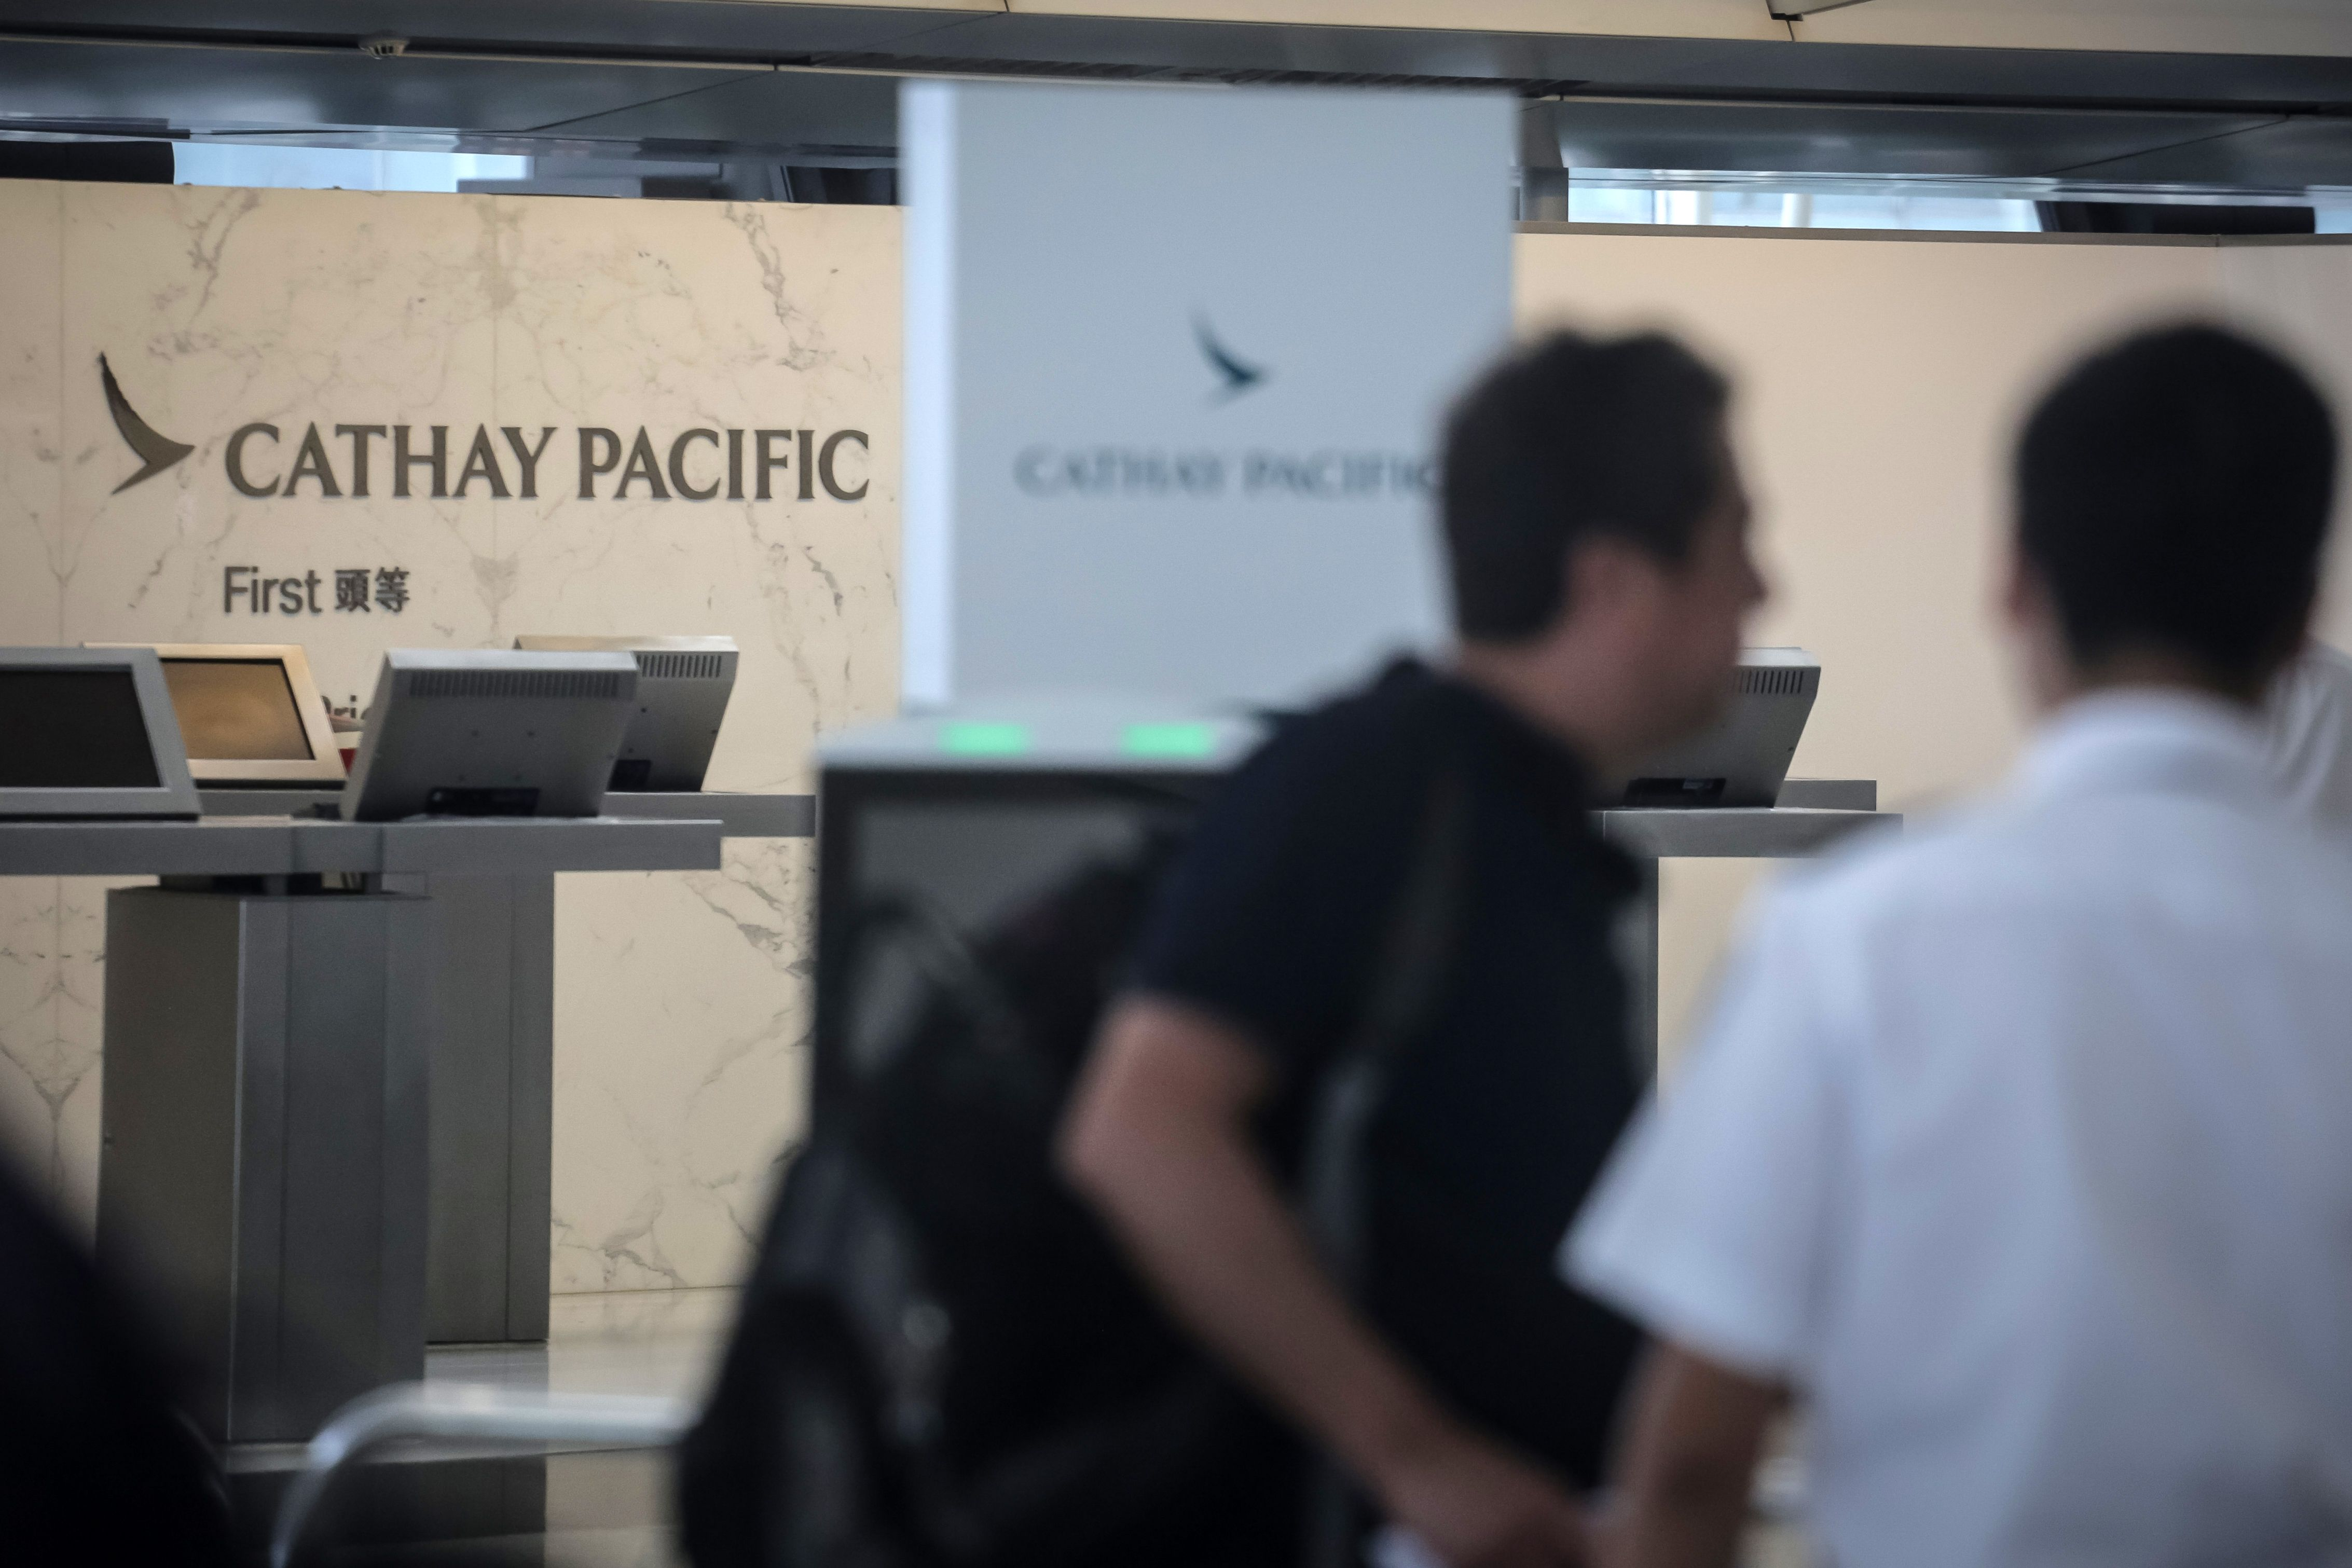 The Cathay Pacific check-in area at Hong Kong's International Airport on August 10, 2019.